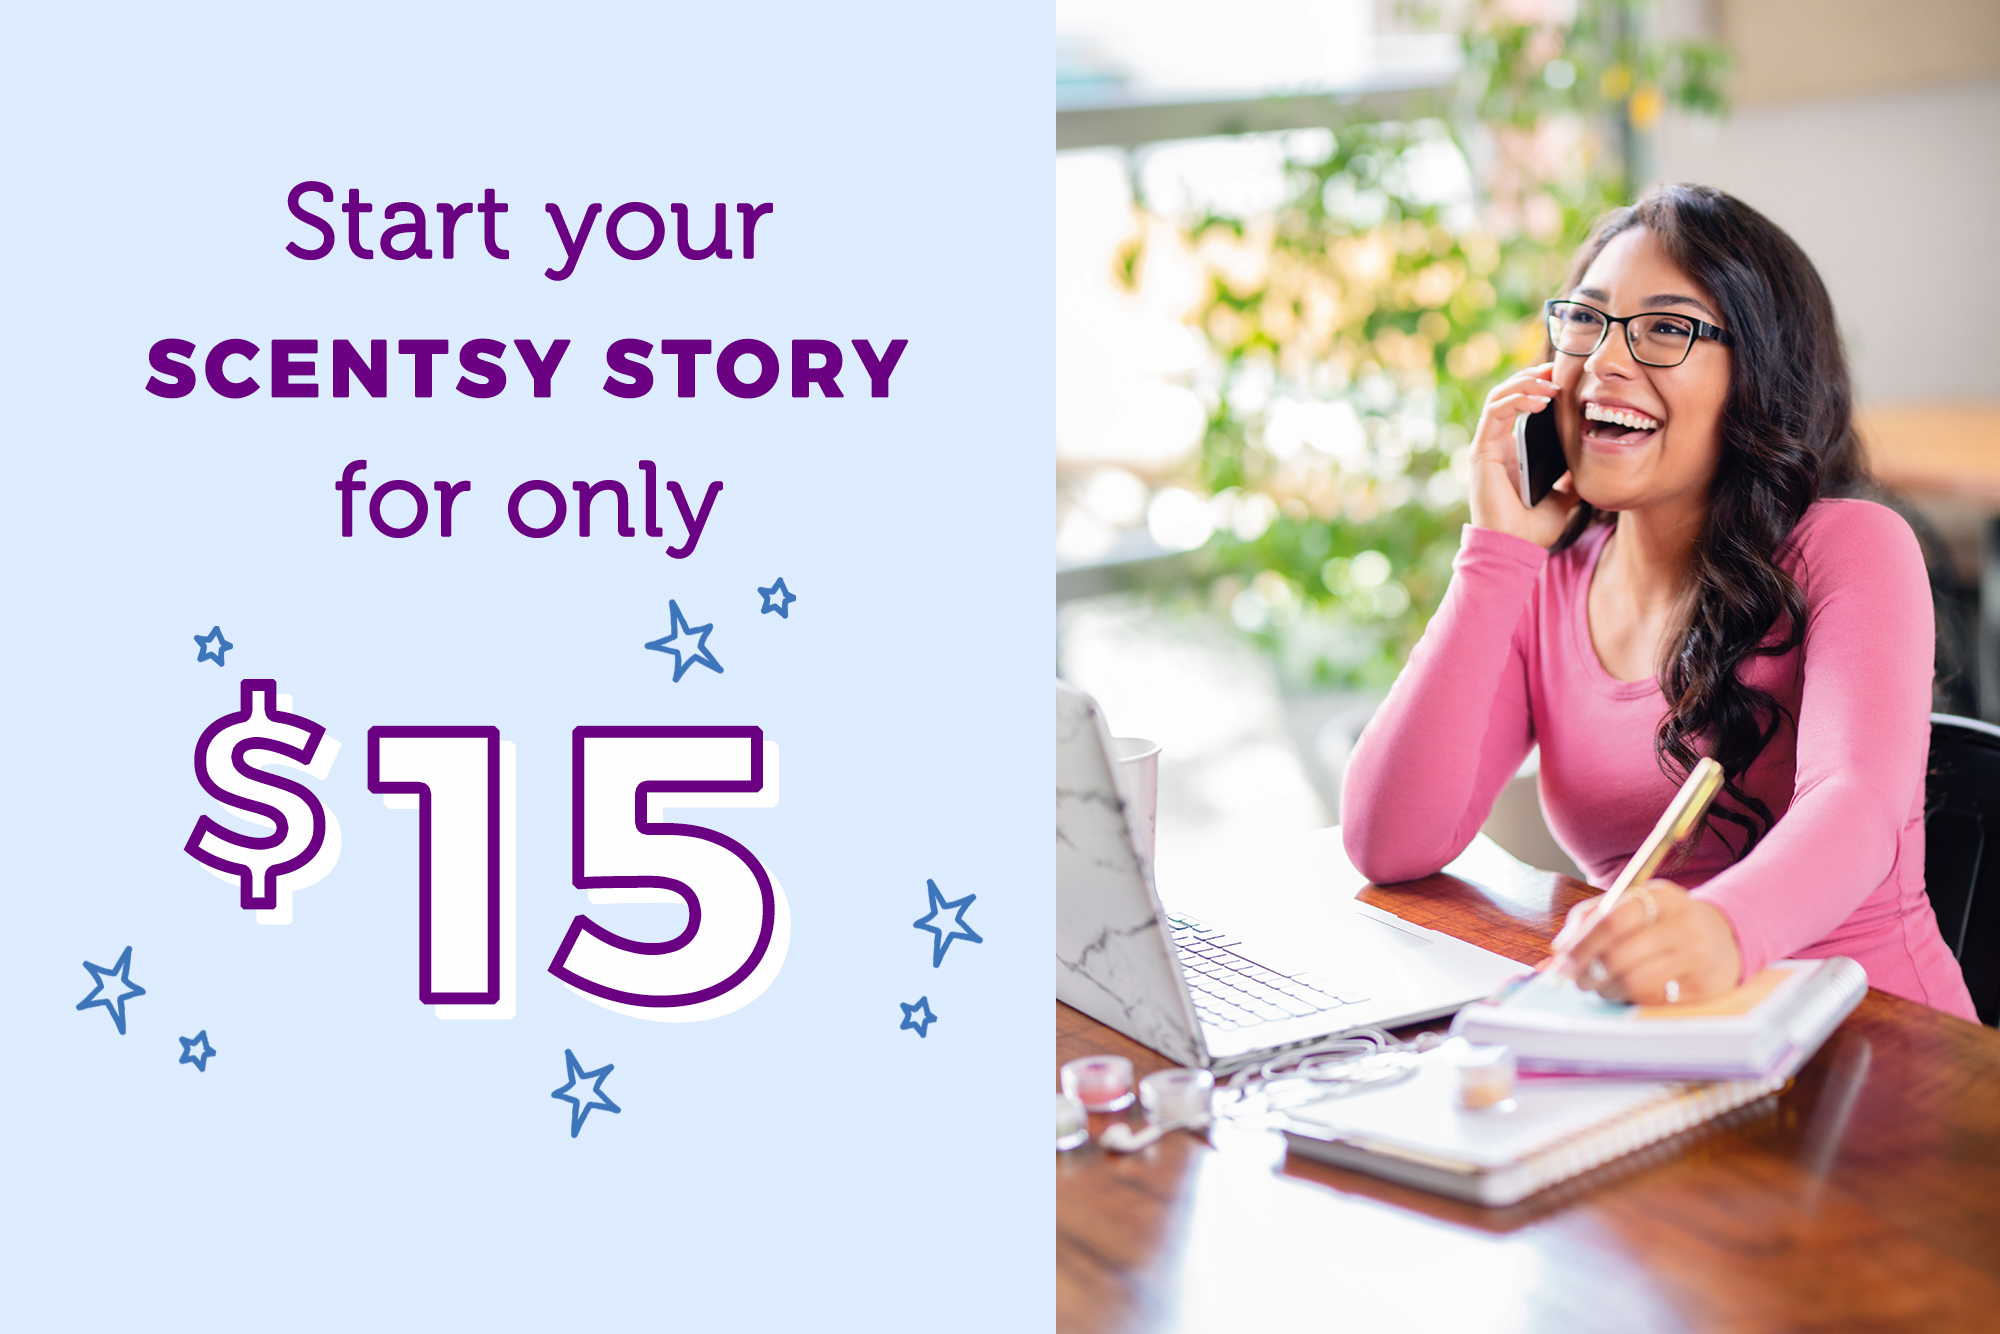 Start your Scentsy Story for only $15 at scentsy.com/join